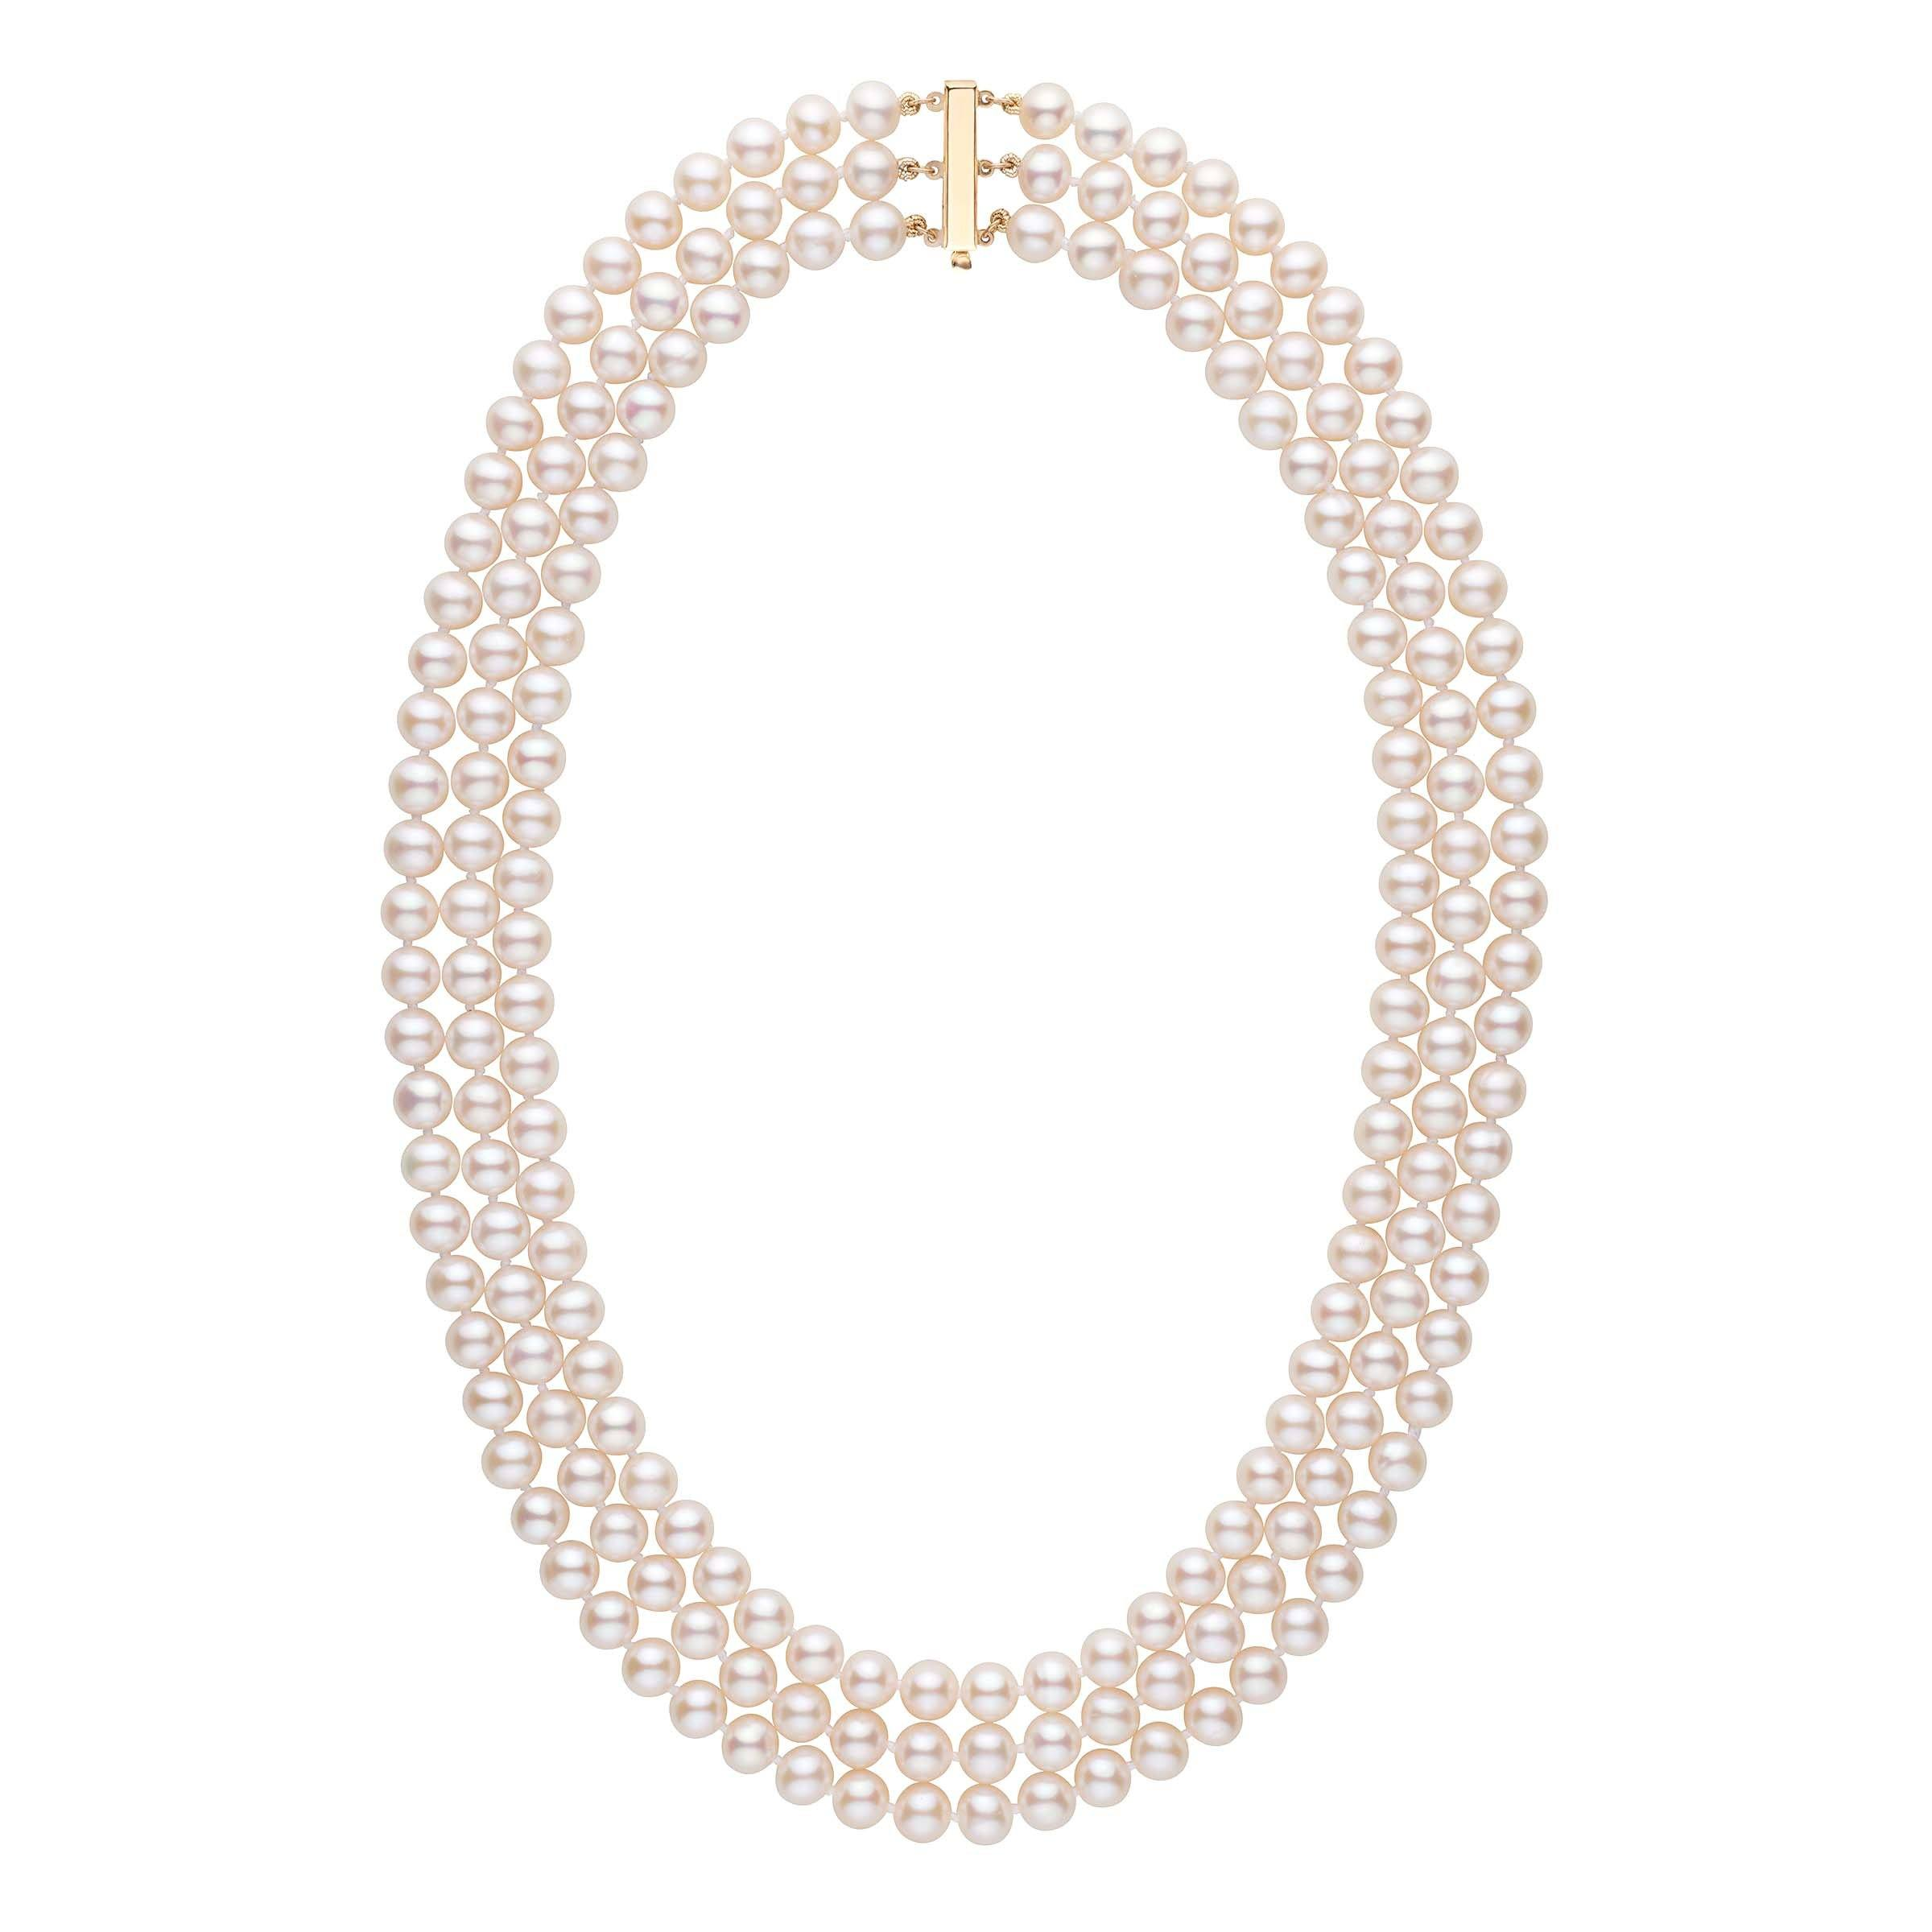 6.5-7.0 mm Triple-Strand AAA White Freshwater Pearl Necklace